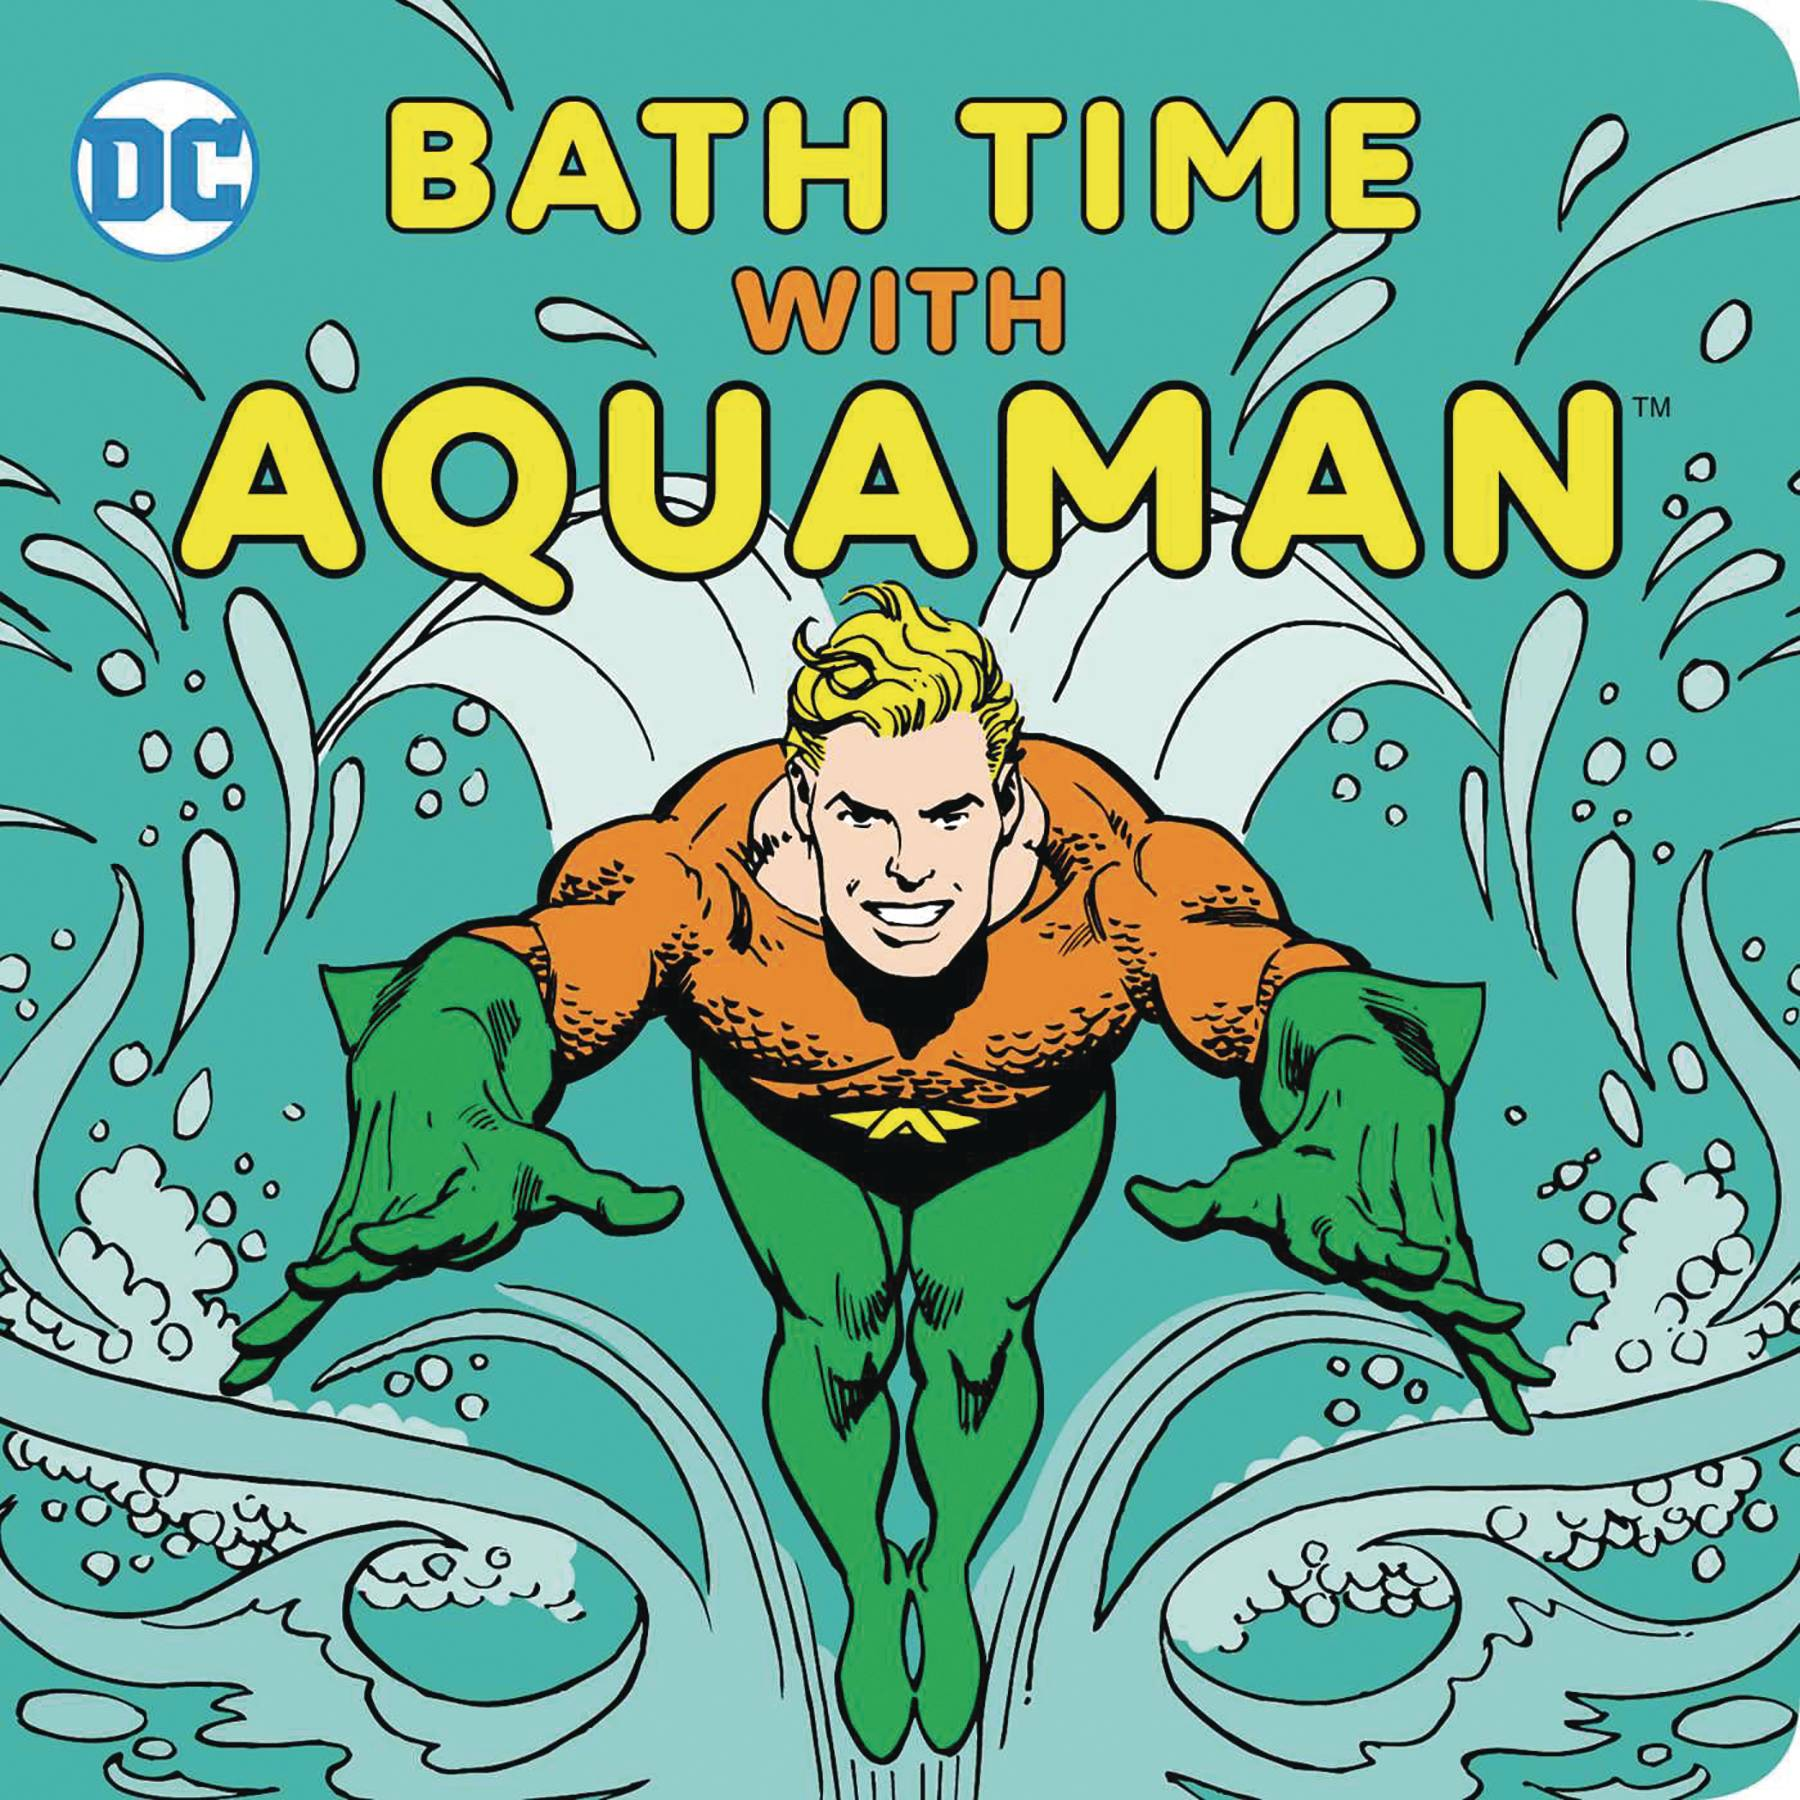 BATH TIME WITH AQUAMAN BATH BOOK.jpg